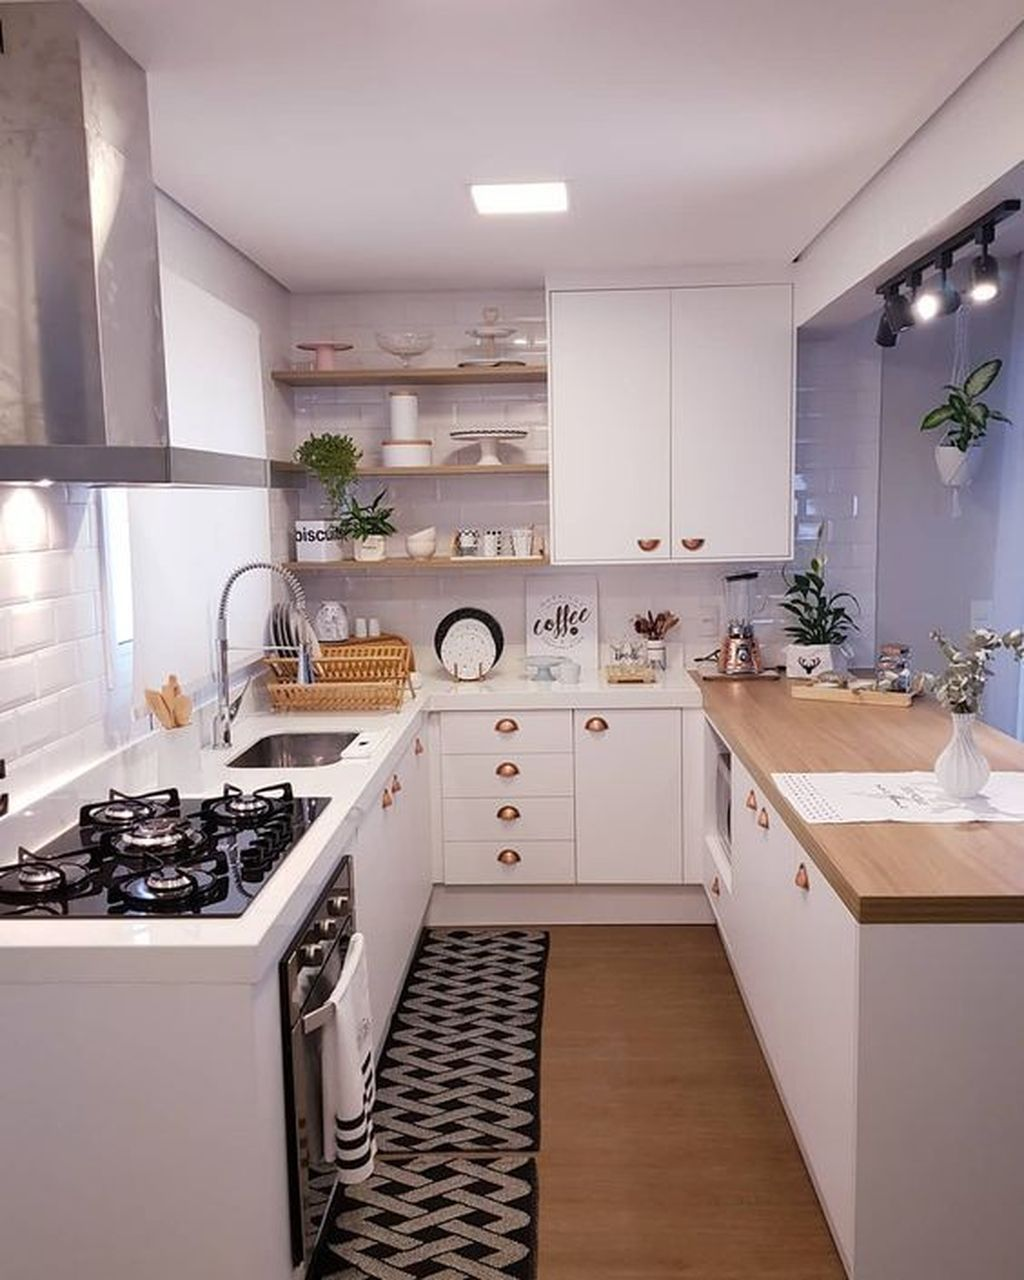 33 amazing u shaped kitchen design ideas you should copy in 2020 small apartment kitchen on u kitchen remodel id=75480